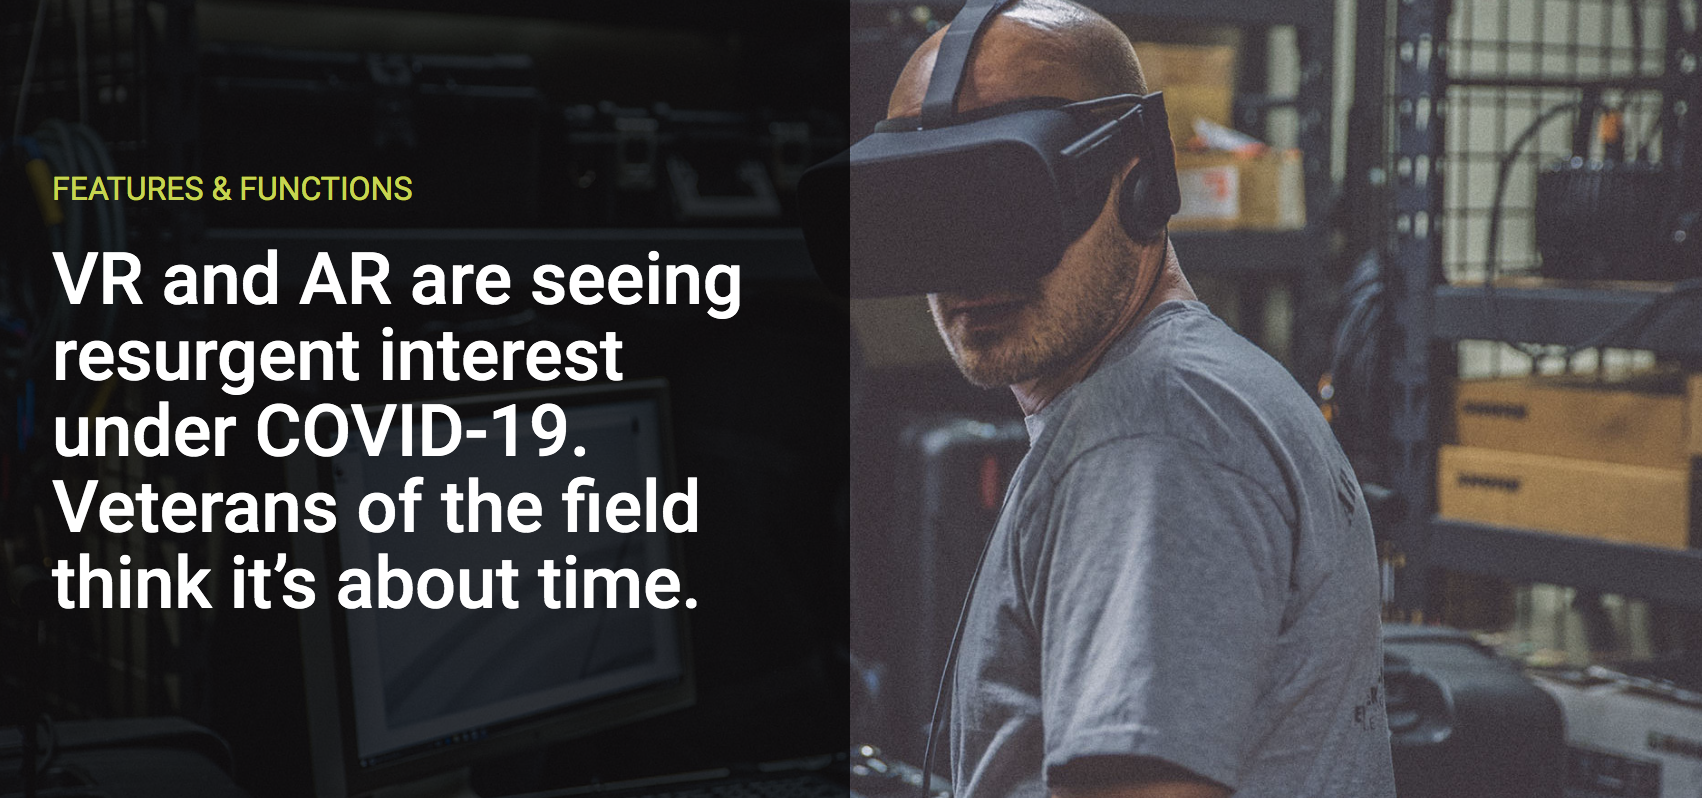 VR and AR are seeing resurgent interest under COVID-19. Veterans of the field think it's about time.